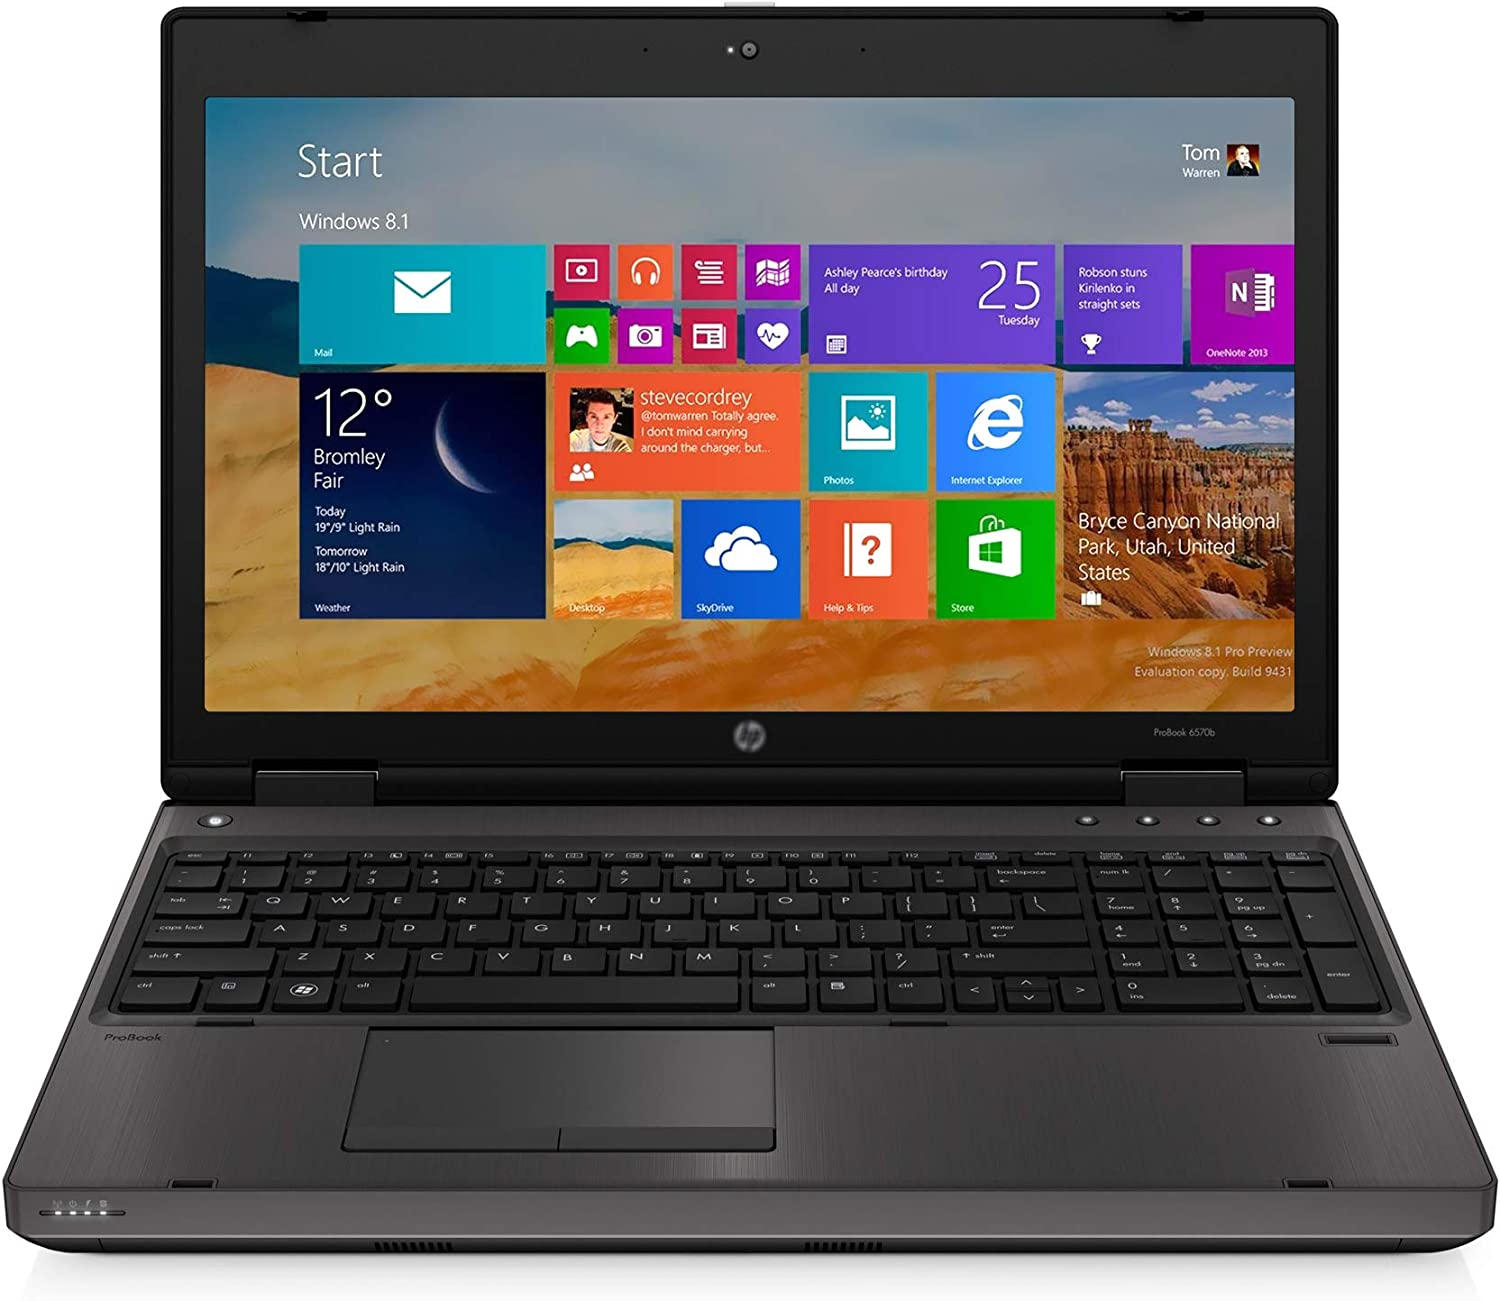 Used Business Professional Laptop in Good Condition 6570B Notebook PC Intel Core i5-3320M 2.5Ghz 4GB RAM 320GB SSD DVDRW Windows 10 Laptop